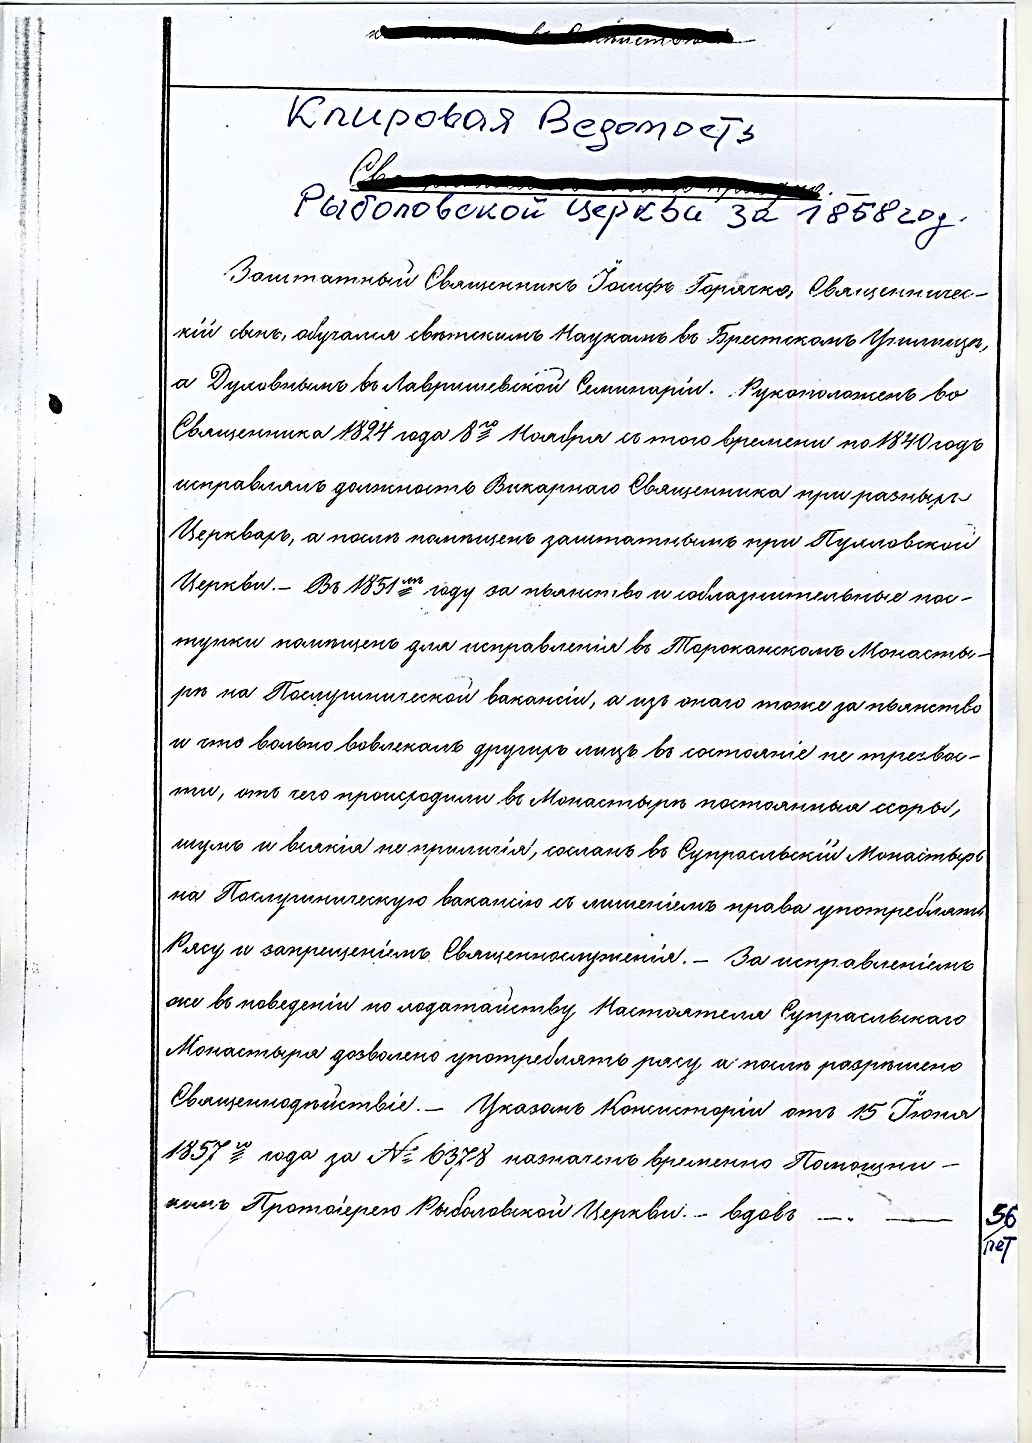 Horaczko Document .jpg